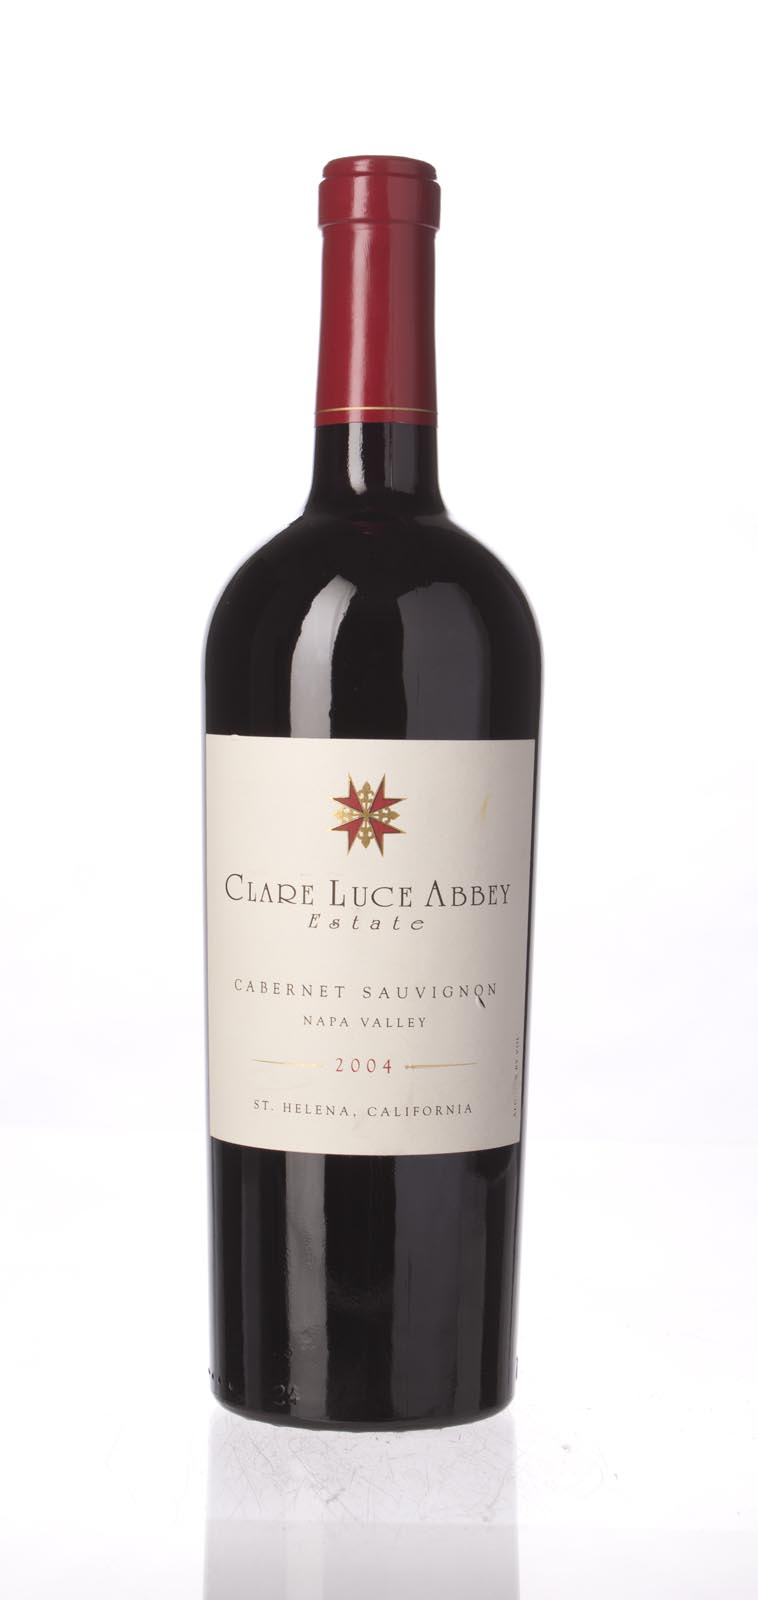 Clare Luce Abbey Estate Cabernet Sauvignon 2004, 750mL () from The BPW - Merchants of rare and fine wines.